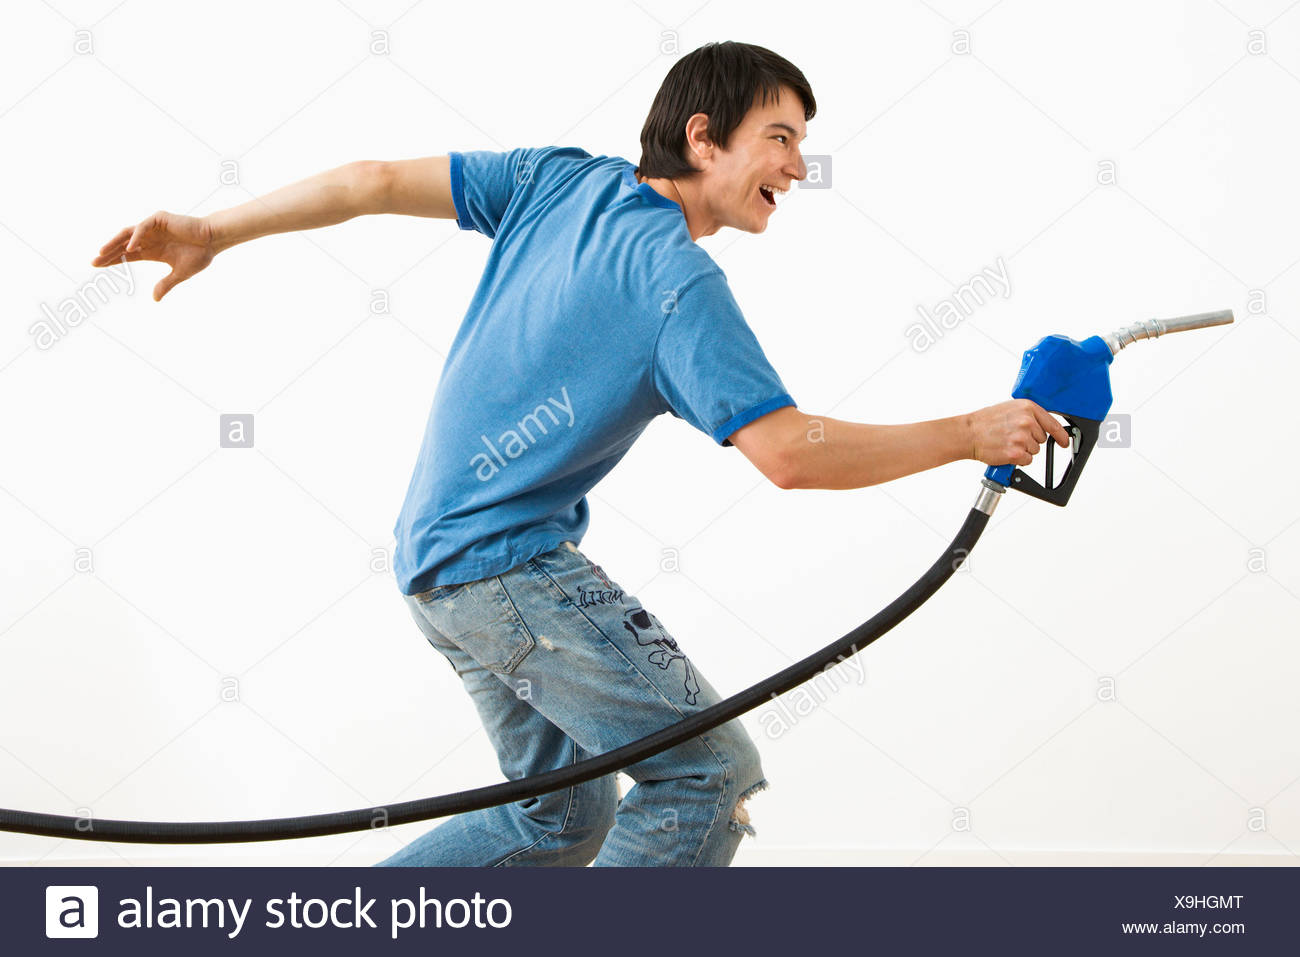 Asian young man aiming gasoline pump nozzle like a gun - Stock Image